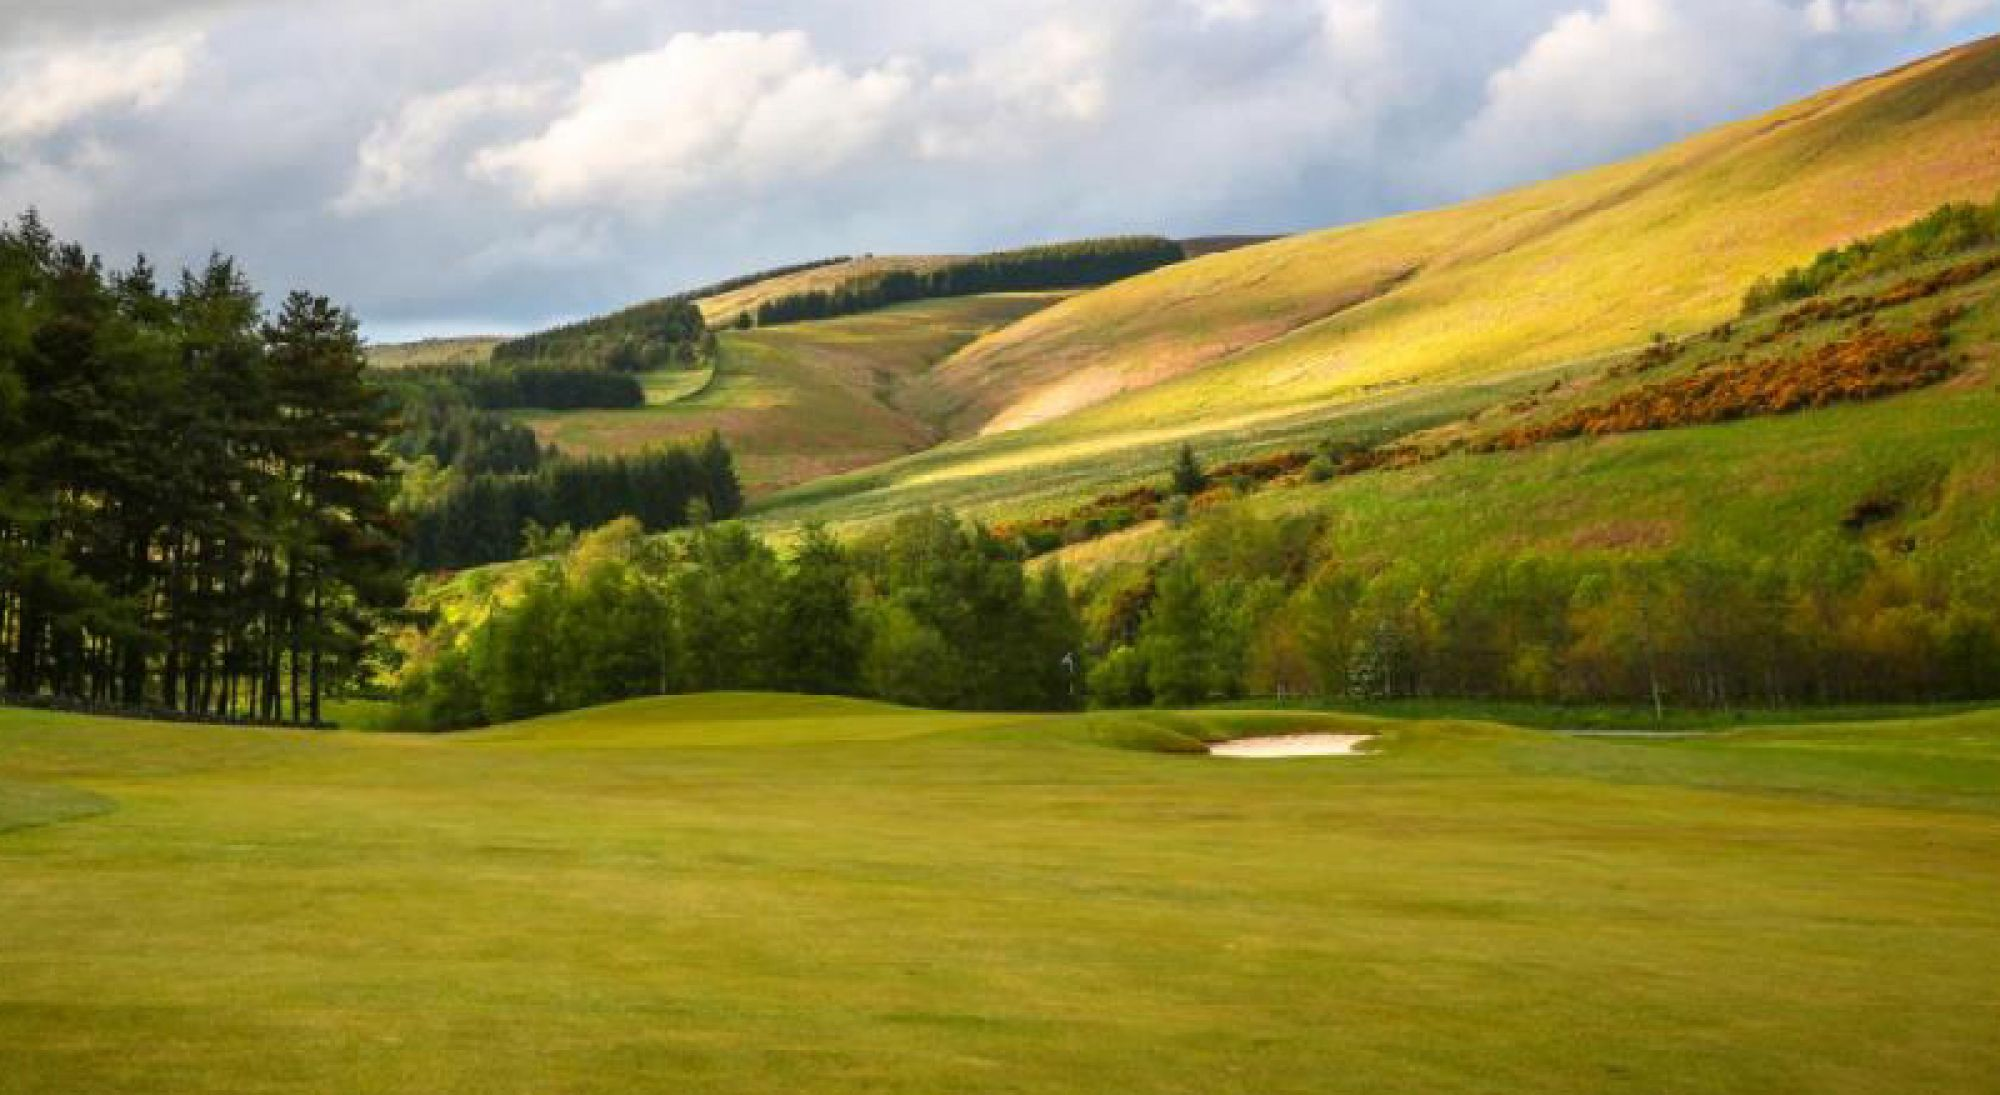 Macdonald Cardrona Championship Course has got among the best golf course around Scotland